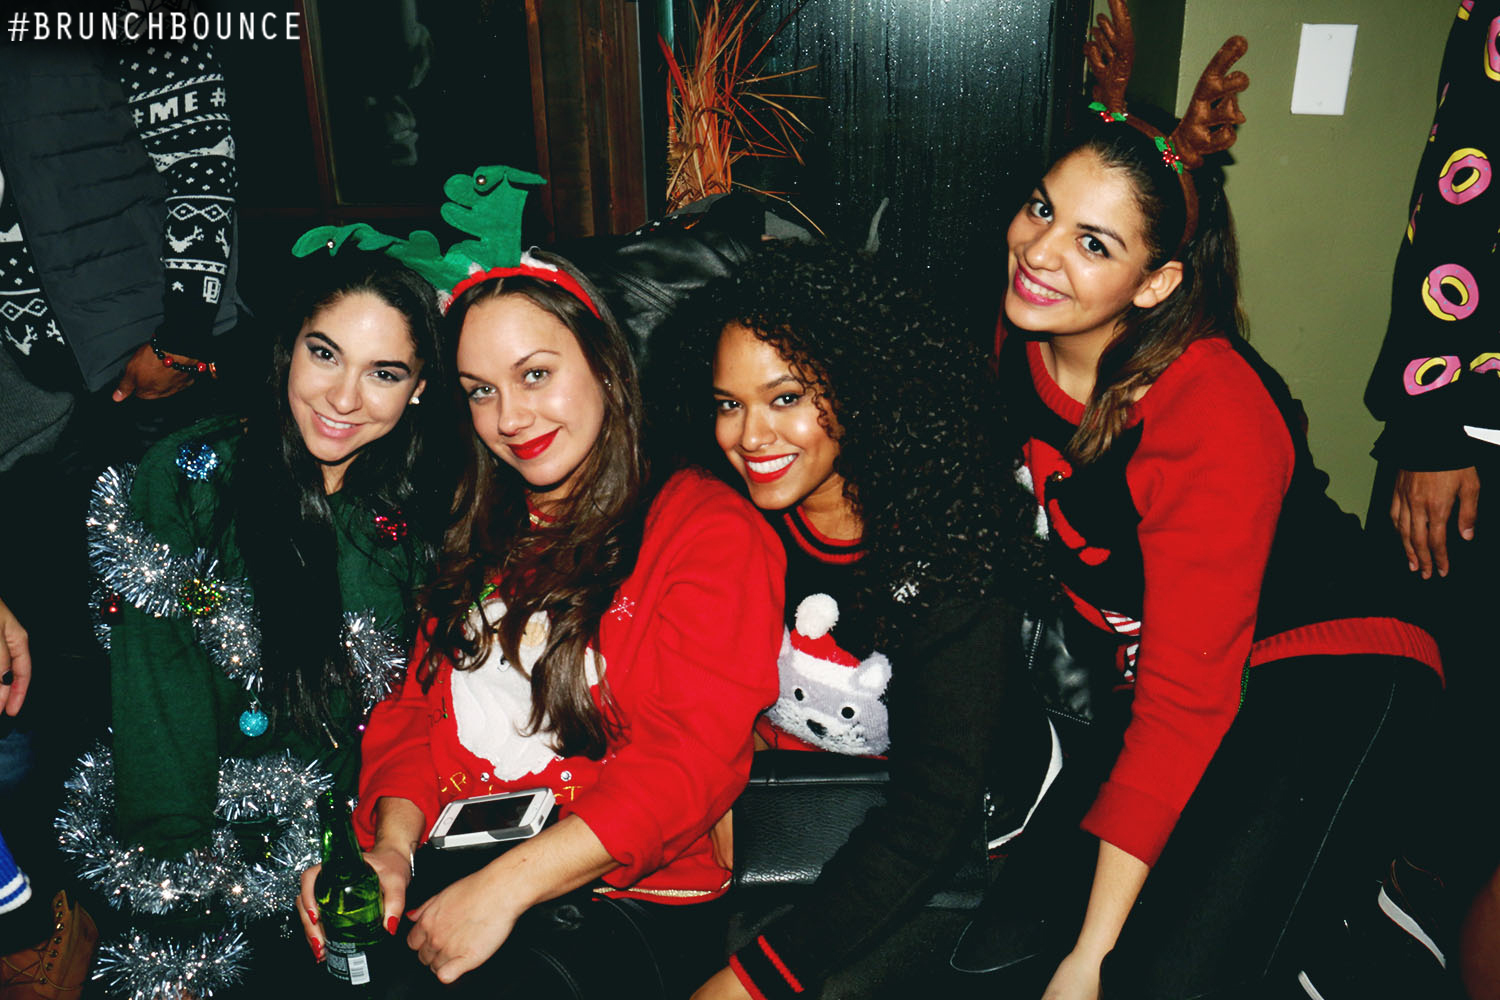 brunchbounce-ugly-christmas-sweater-party-122014_16056922886_o.jpg